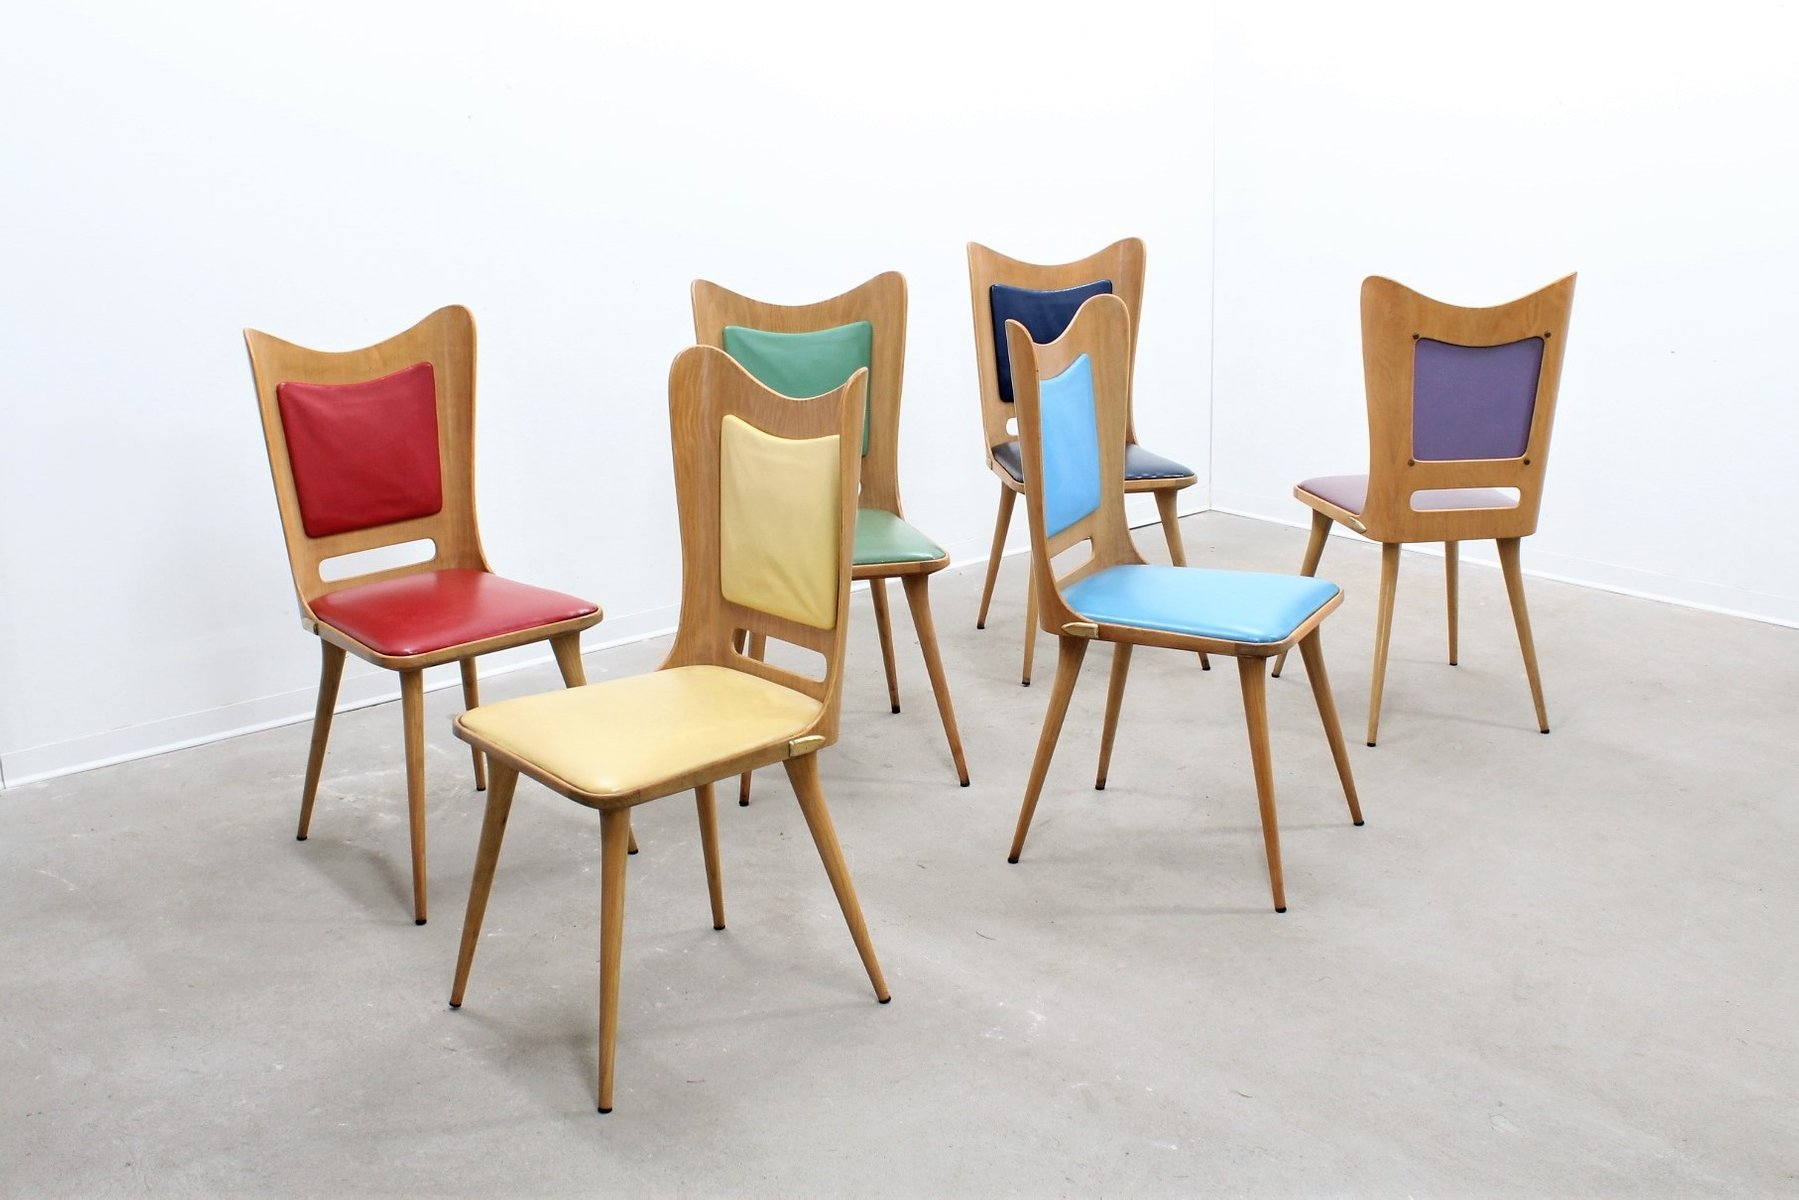 Mid century multi colored dining chairs by carlo ratti for Colorful dining chairs